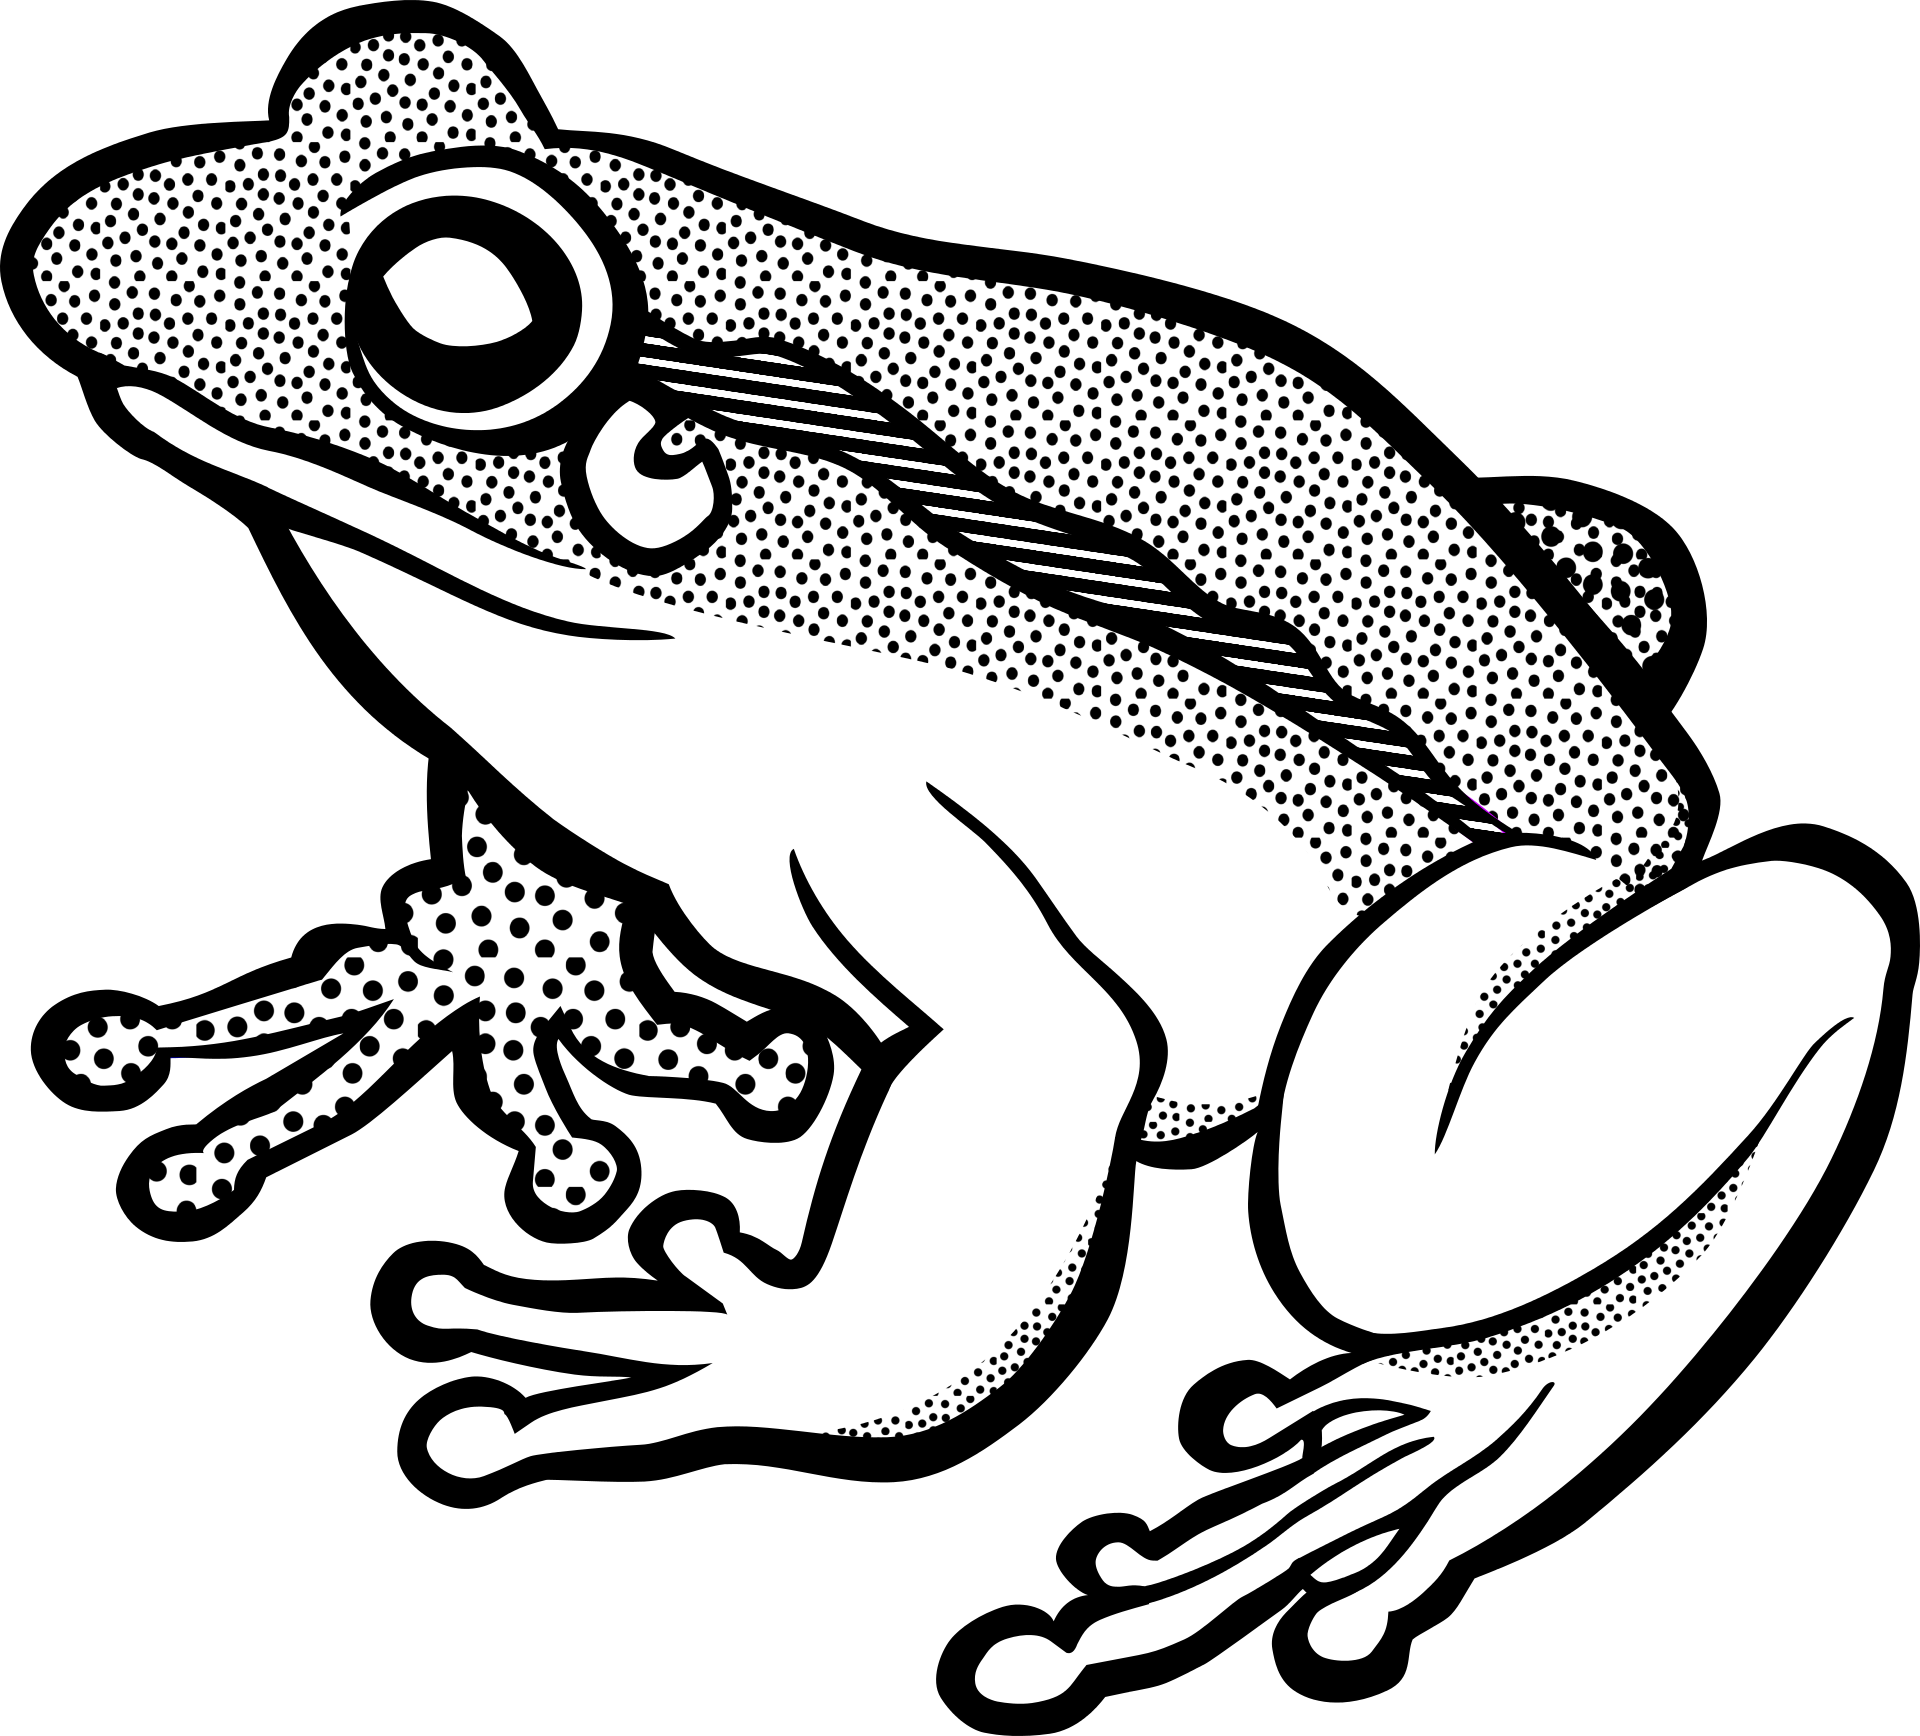 Frogs drawing black and white. Of a frog free